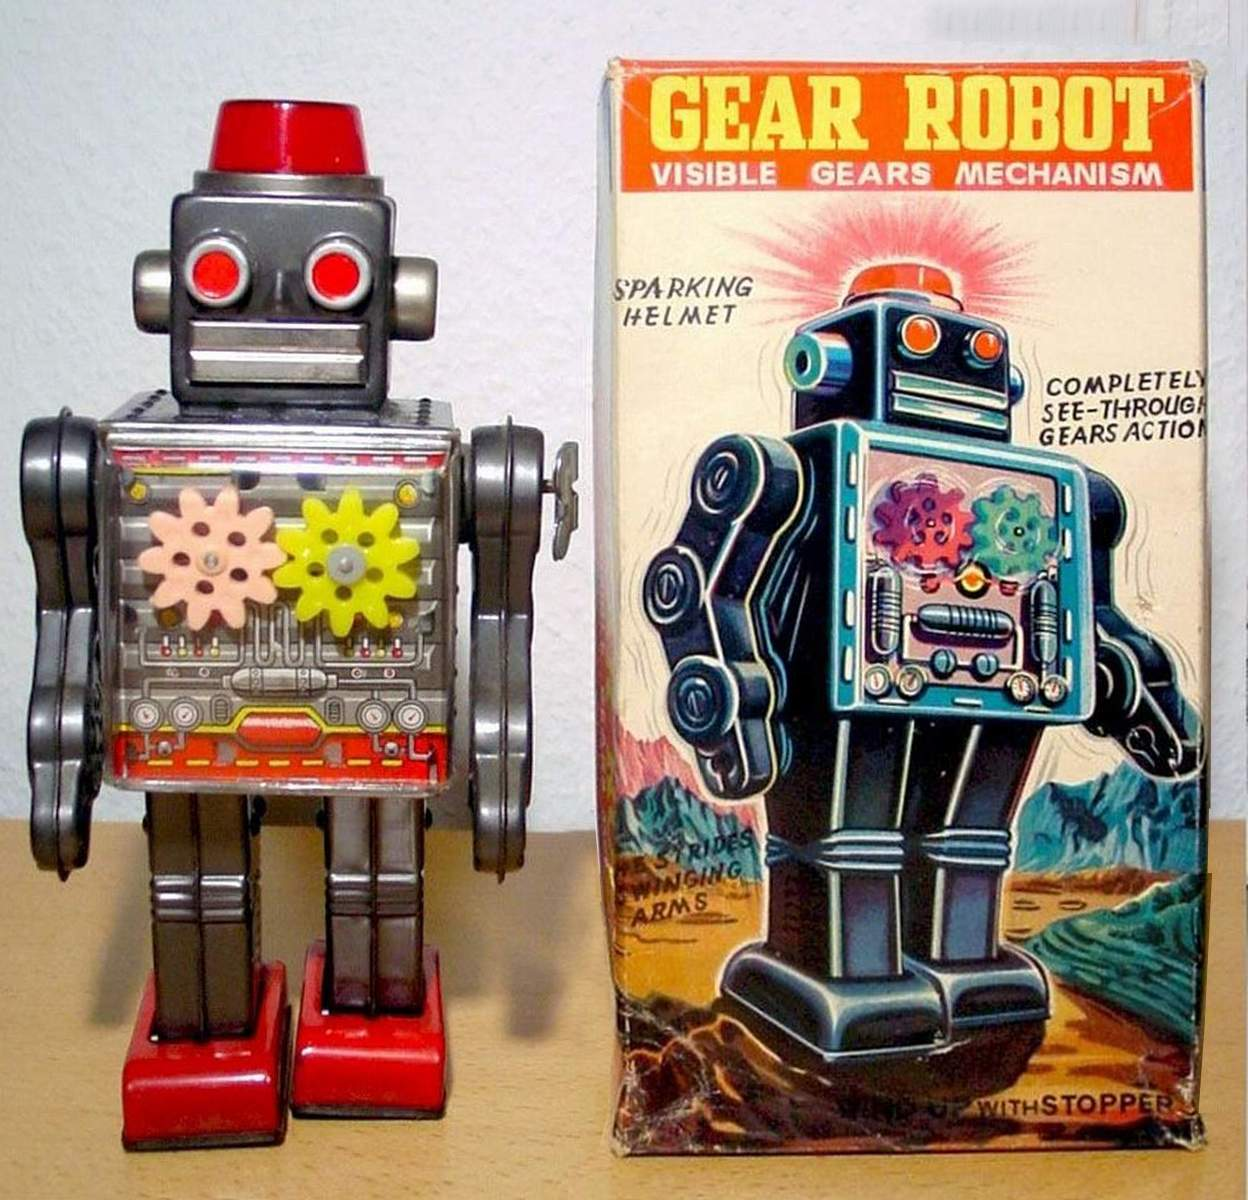 Gear Robot by S.H. Horikawa - The Old Robots Web Site